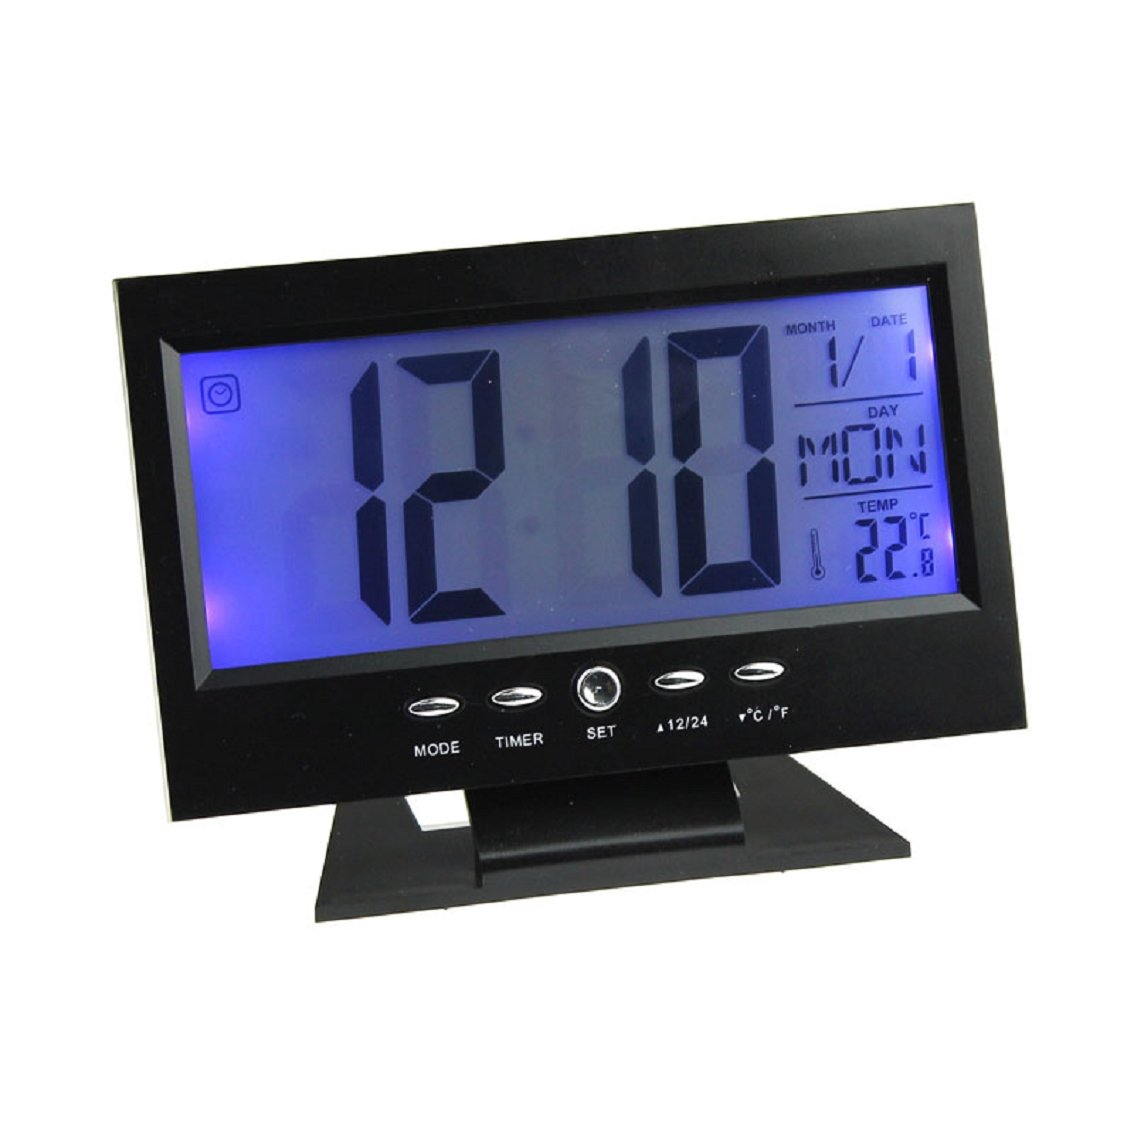 Willtoo(TM) LED Creative Digital Alarm Clock Light Control Backlight Time+Calendar Desk Clocks (Black)